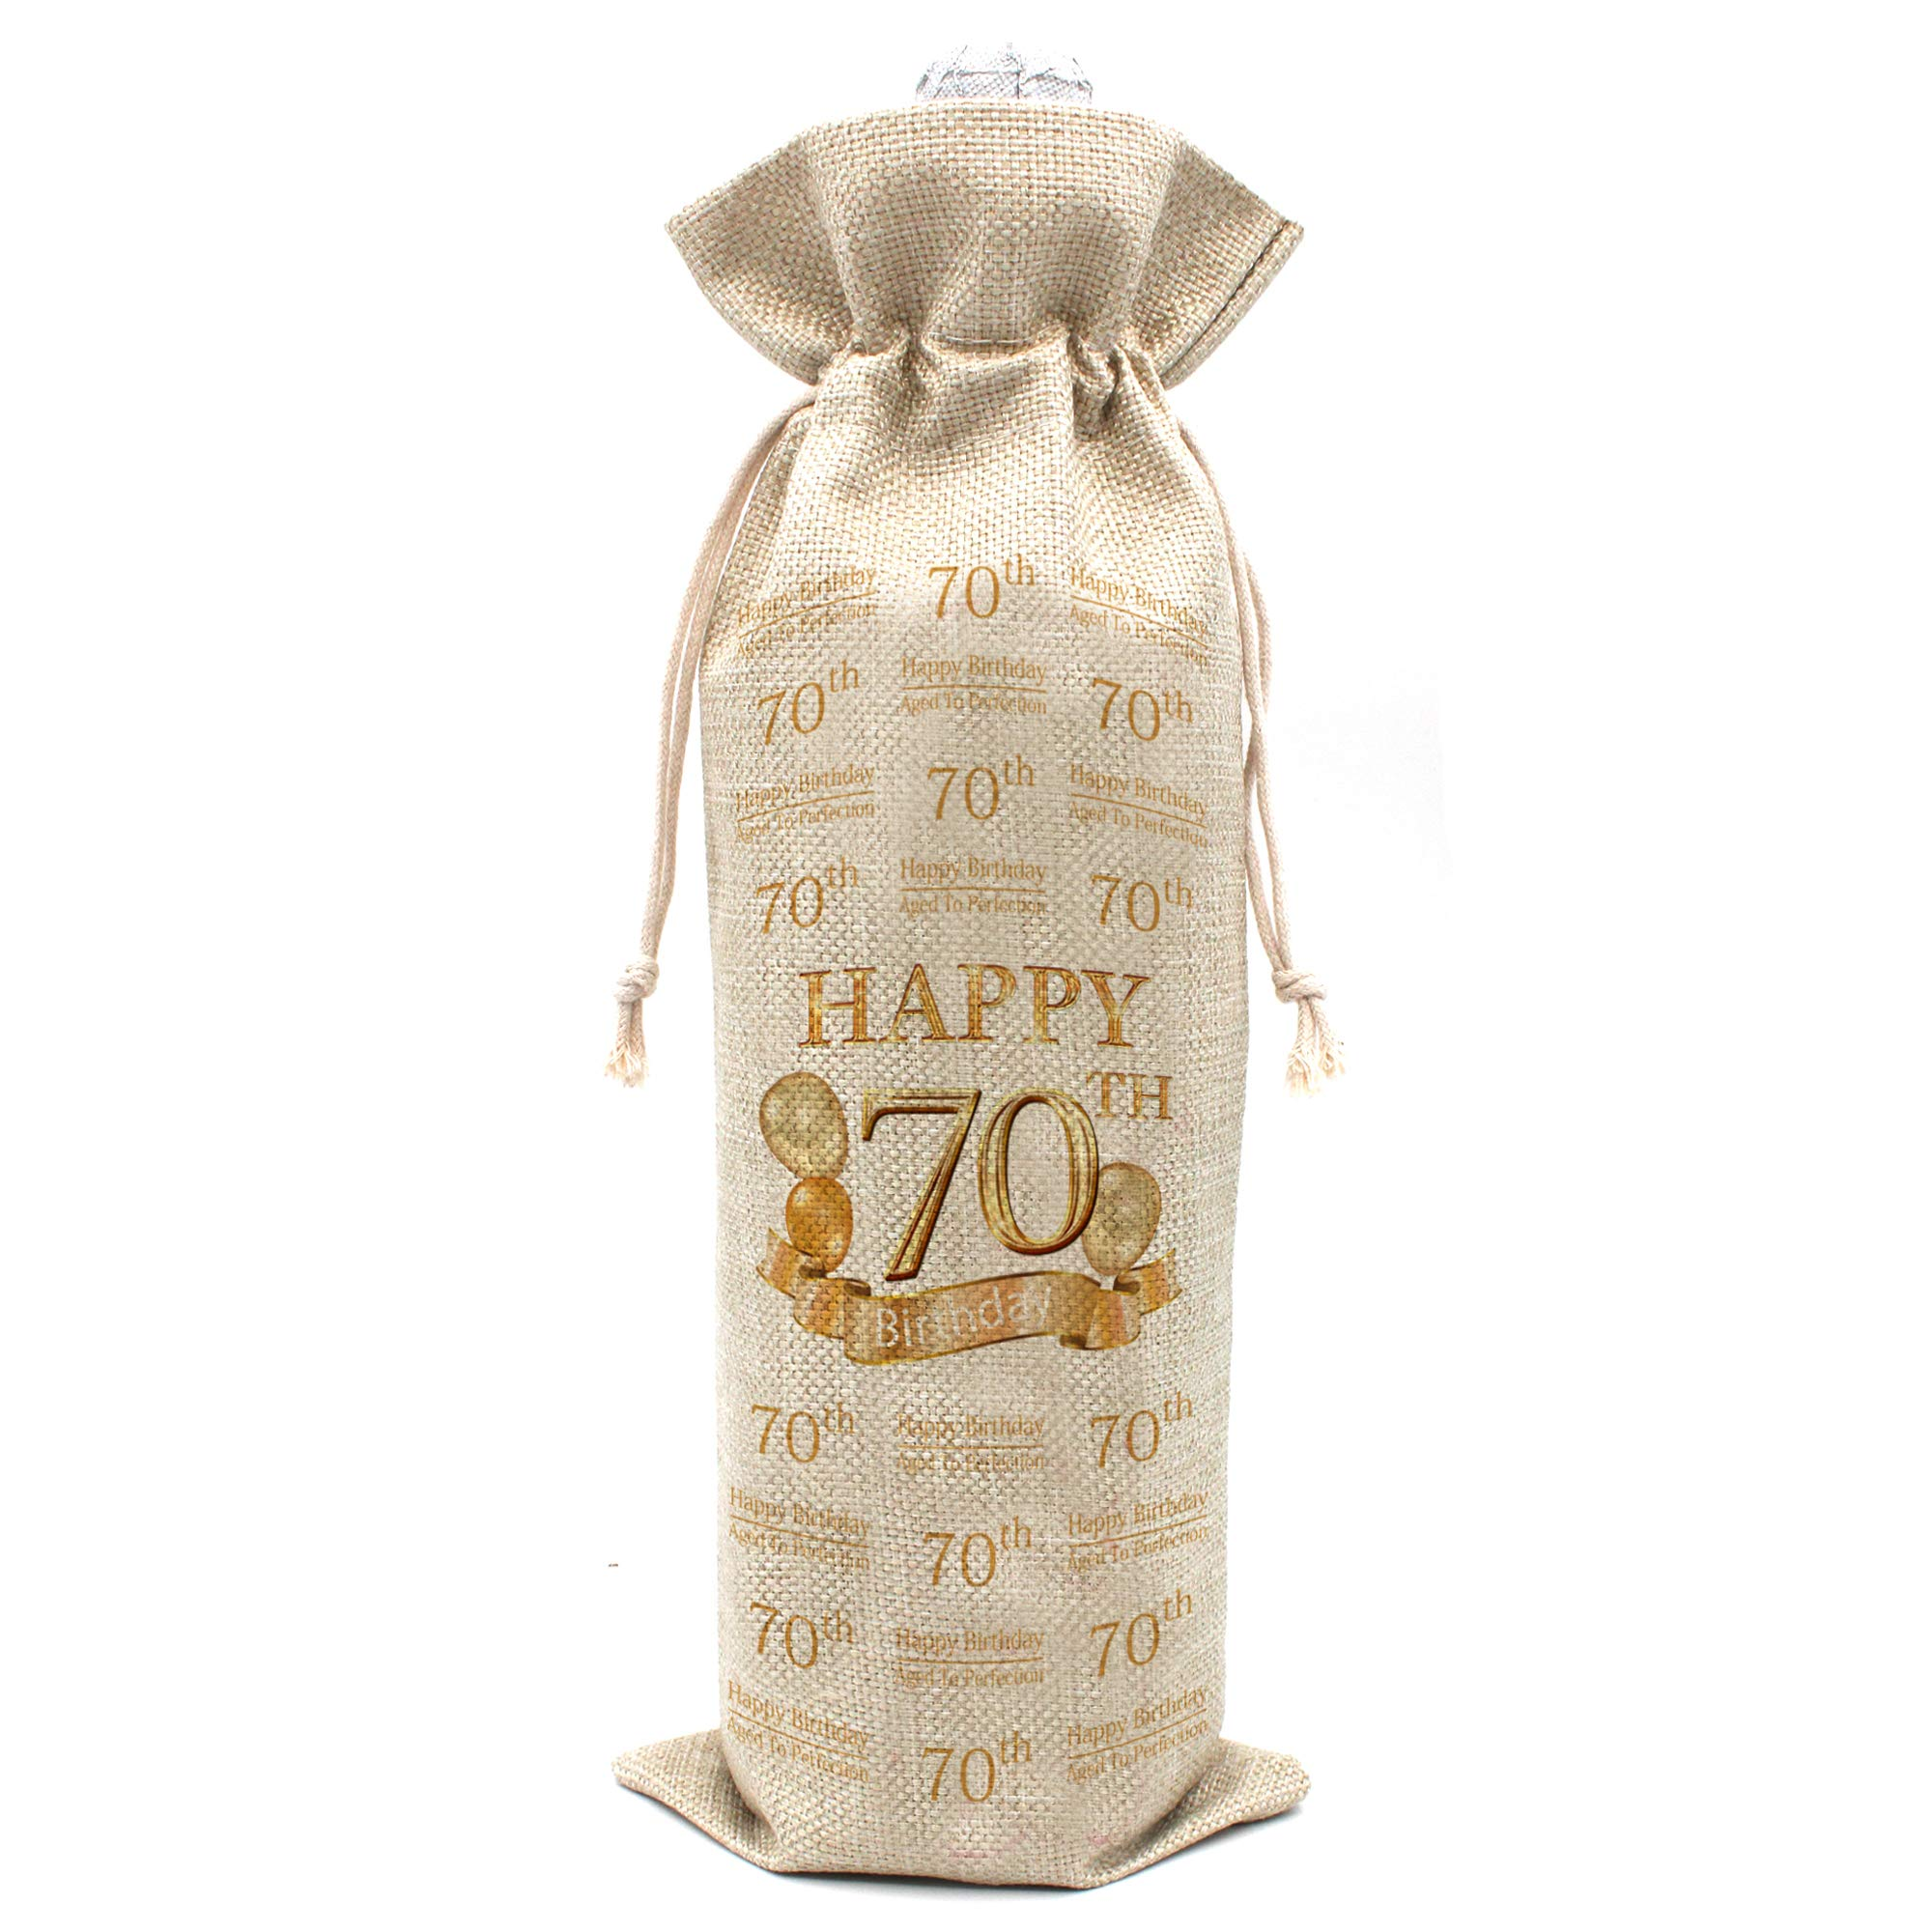 Amazon Com 70th Birthday Gifts For Women And Men Wine Bags Vintage 70 Year Old Presents Best Anniversary Gift Ideas For Him Her Husband Wife Mom Dad Cotton Burlap Drawstring